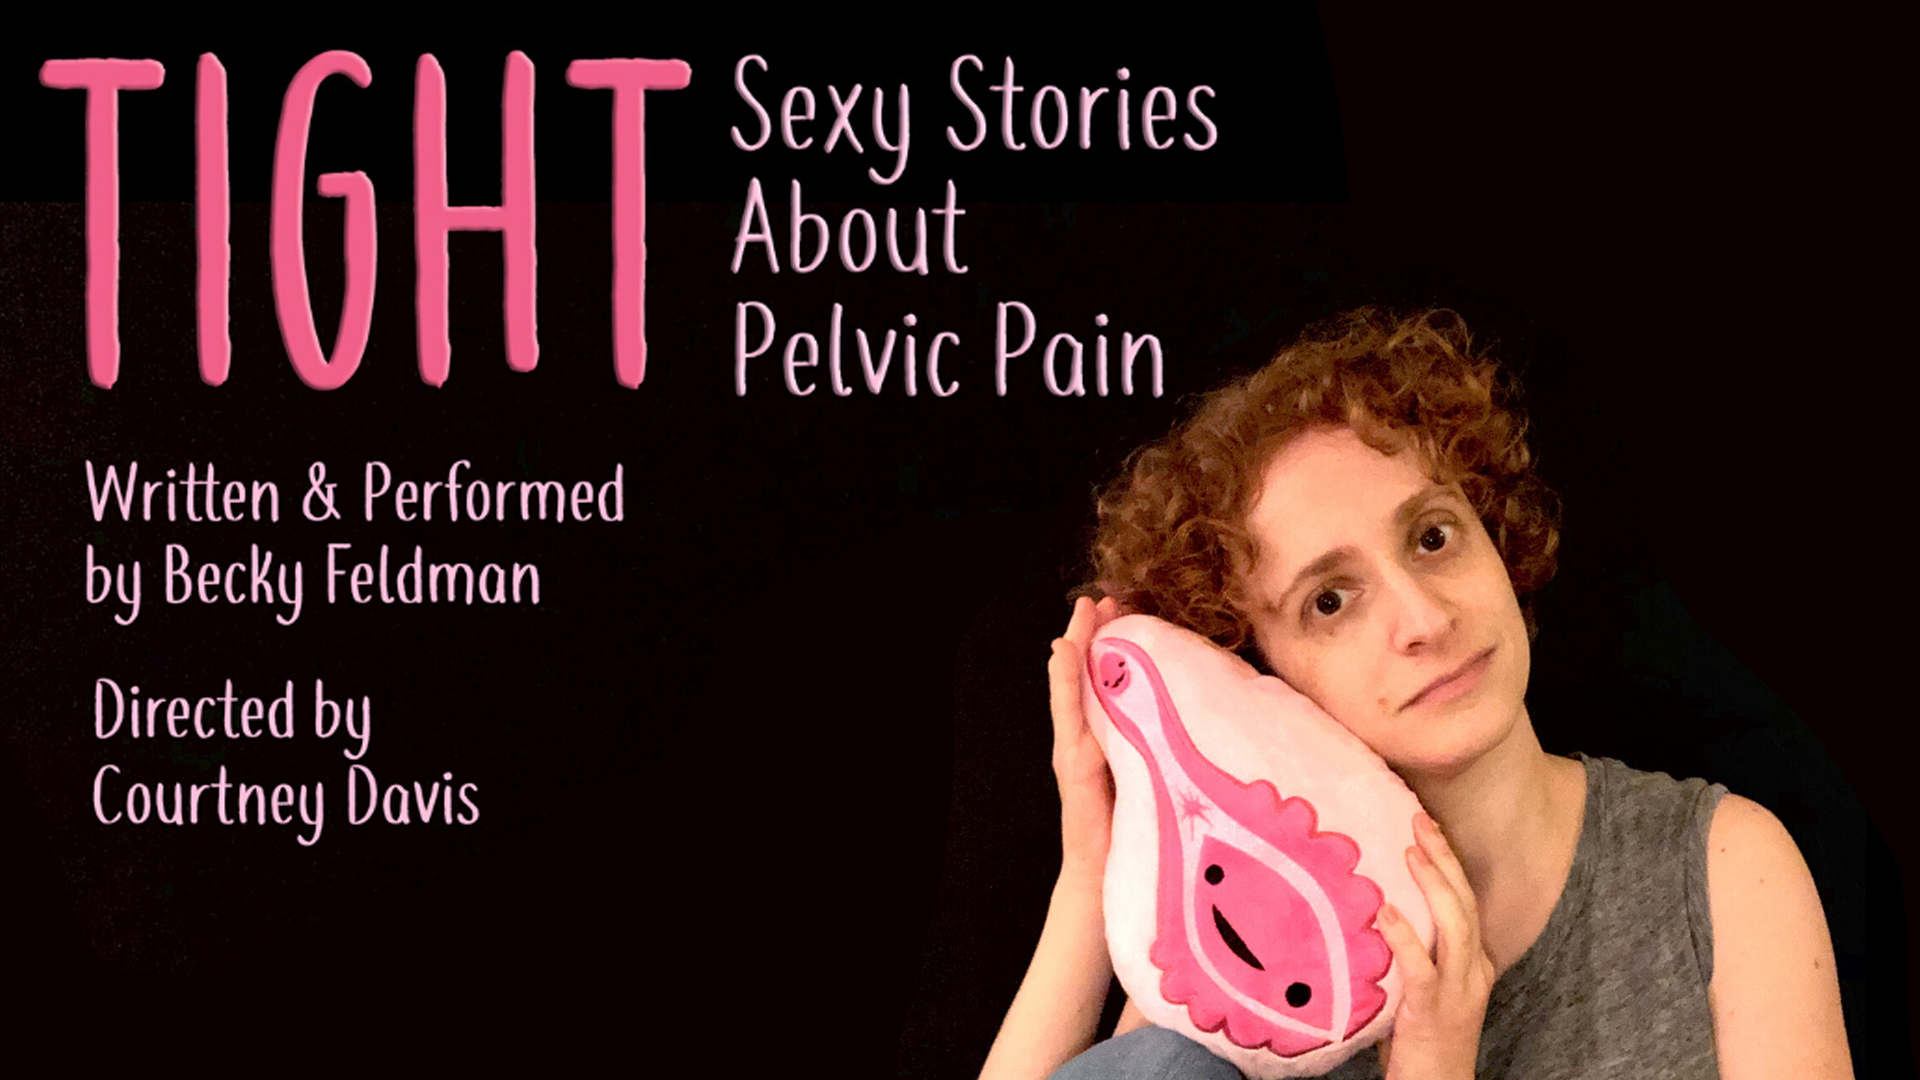 TIGHT Sexy Stories About Pelvic Pain Feb 20 @ 7pm PST